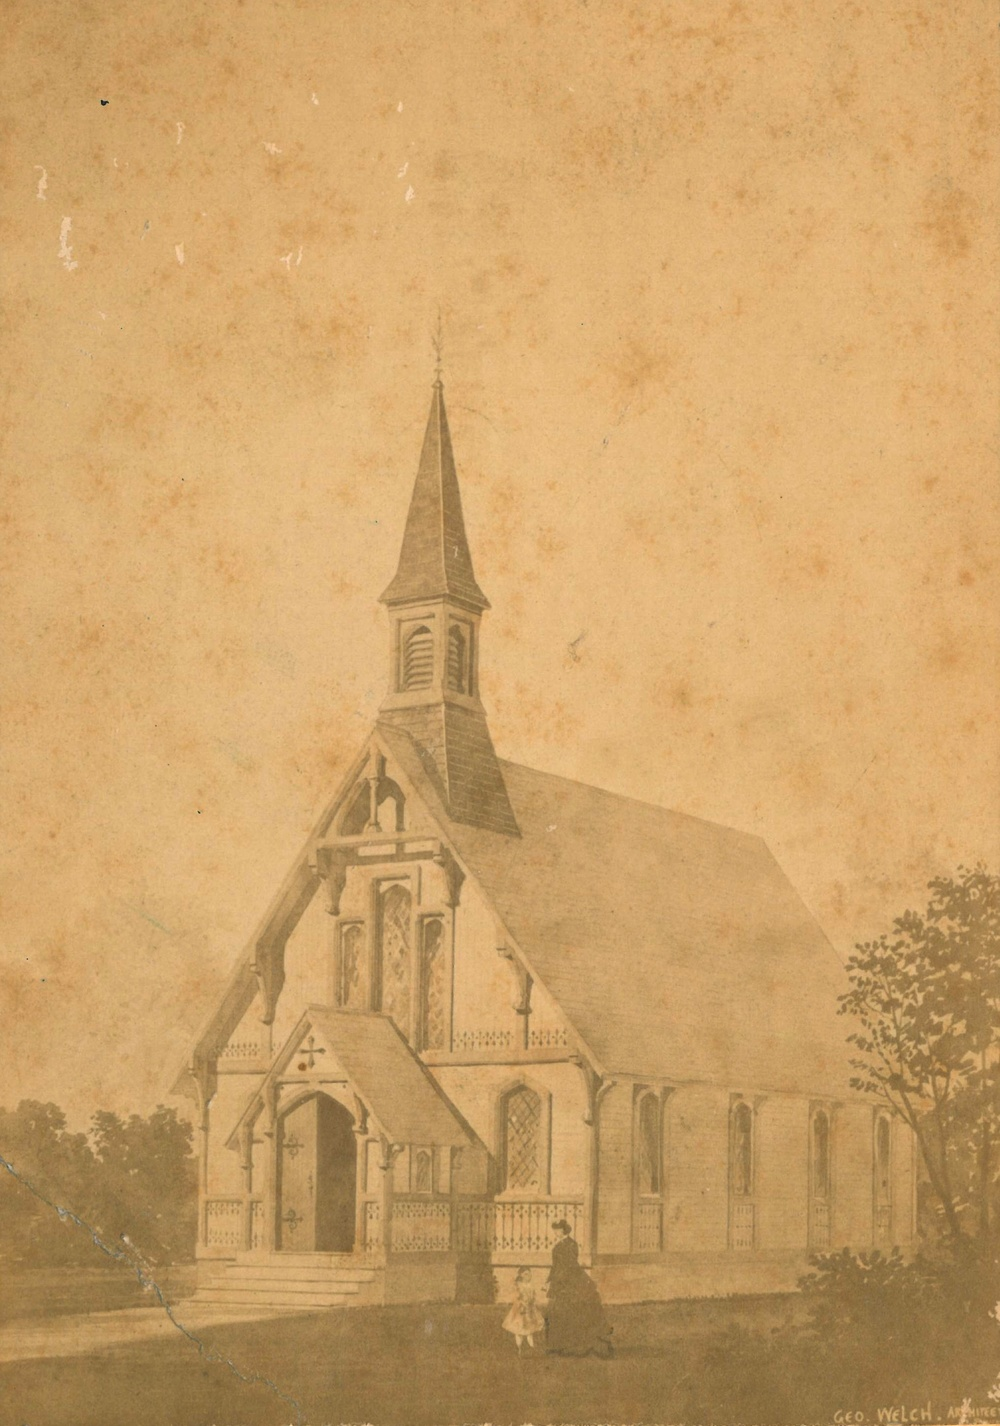 An early postcard view of the church building, dating to the 1870s.